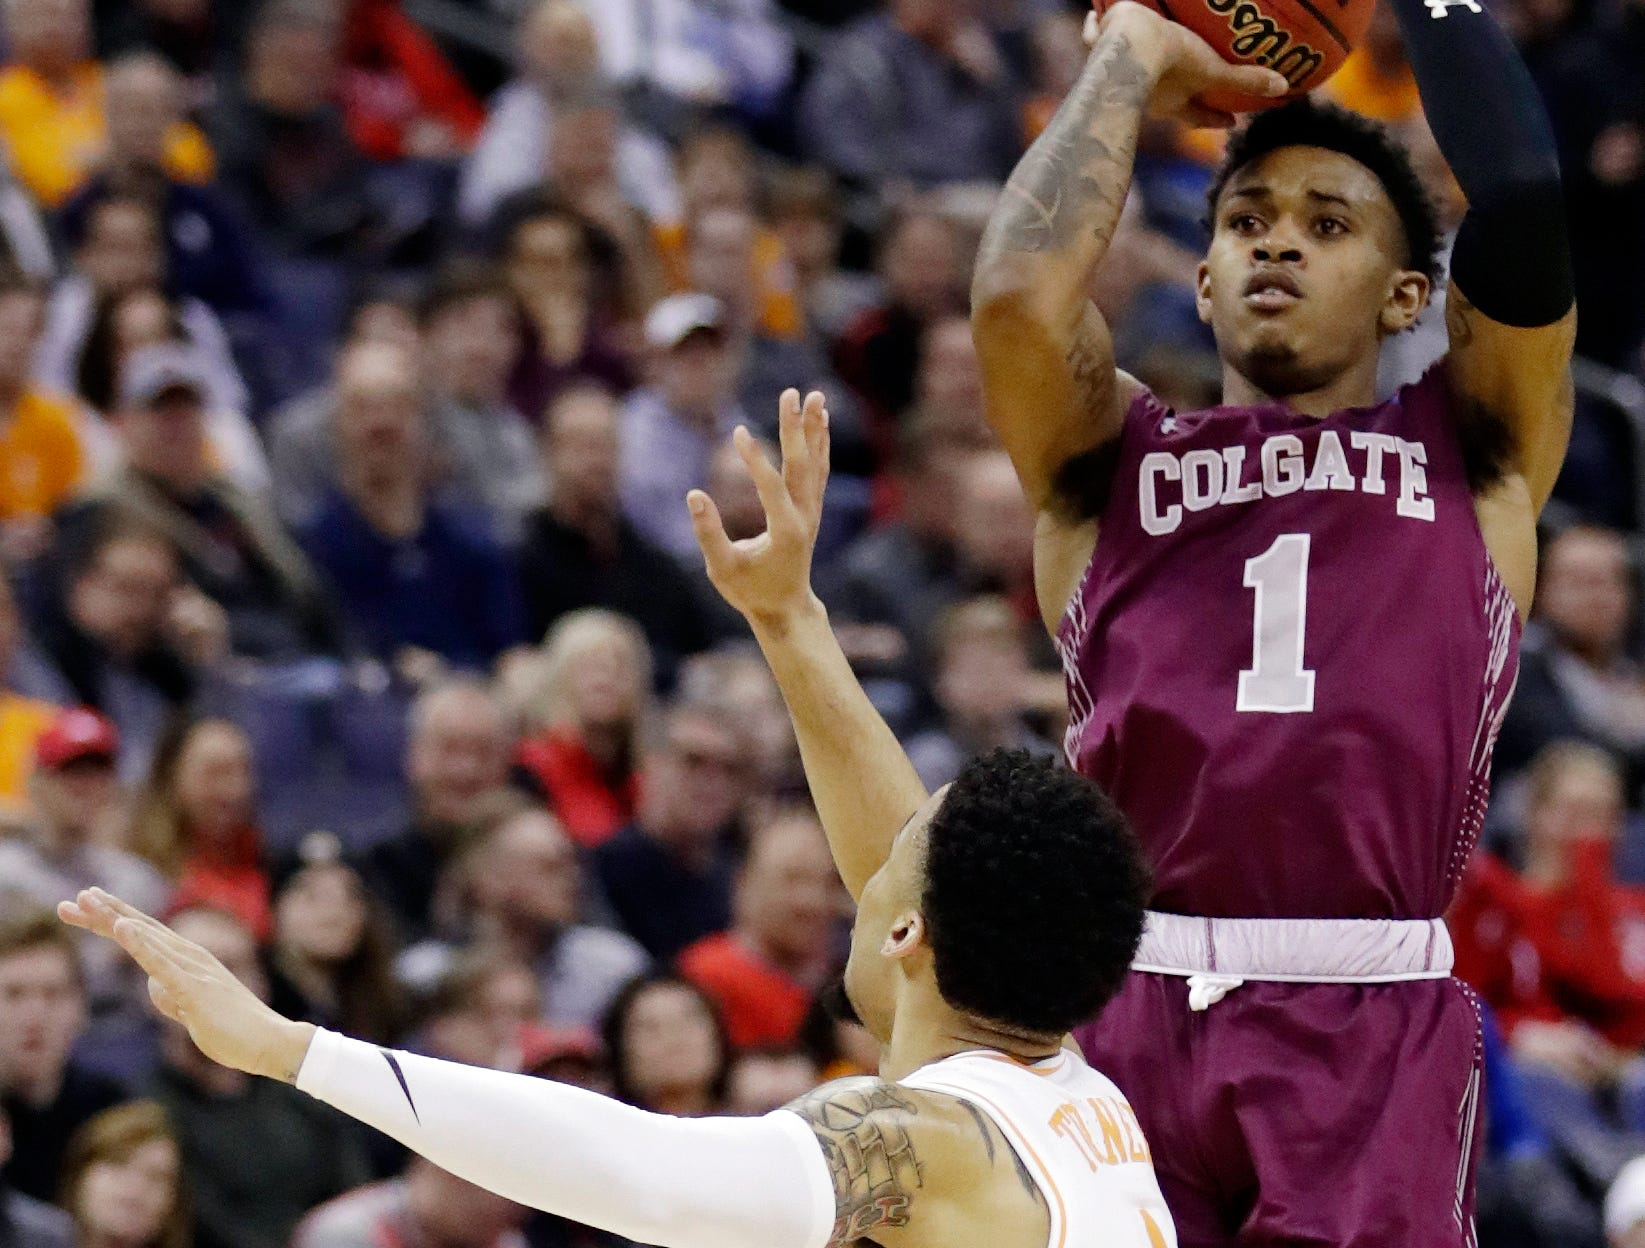 Colgate's Jordan Burns, right, shoots over Tennessee's Lamonte Turner during the first half of a first-round game in the NCAA men's college basketball tournament in Columbus, Ohio, Friday, March 22, 2019. (AP Photo/Tony Dejak)